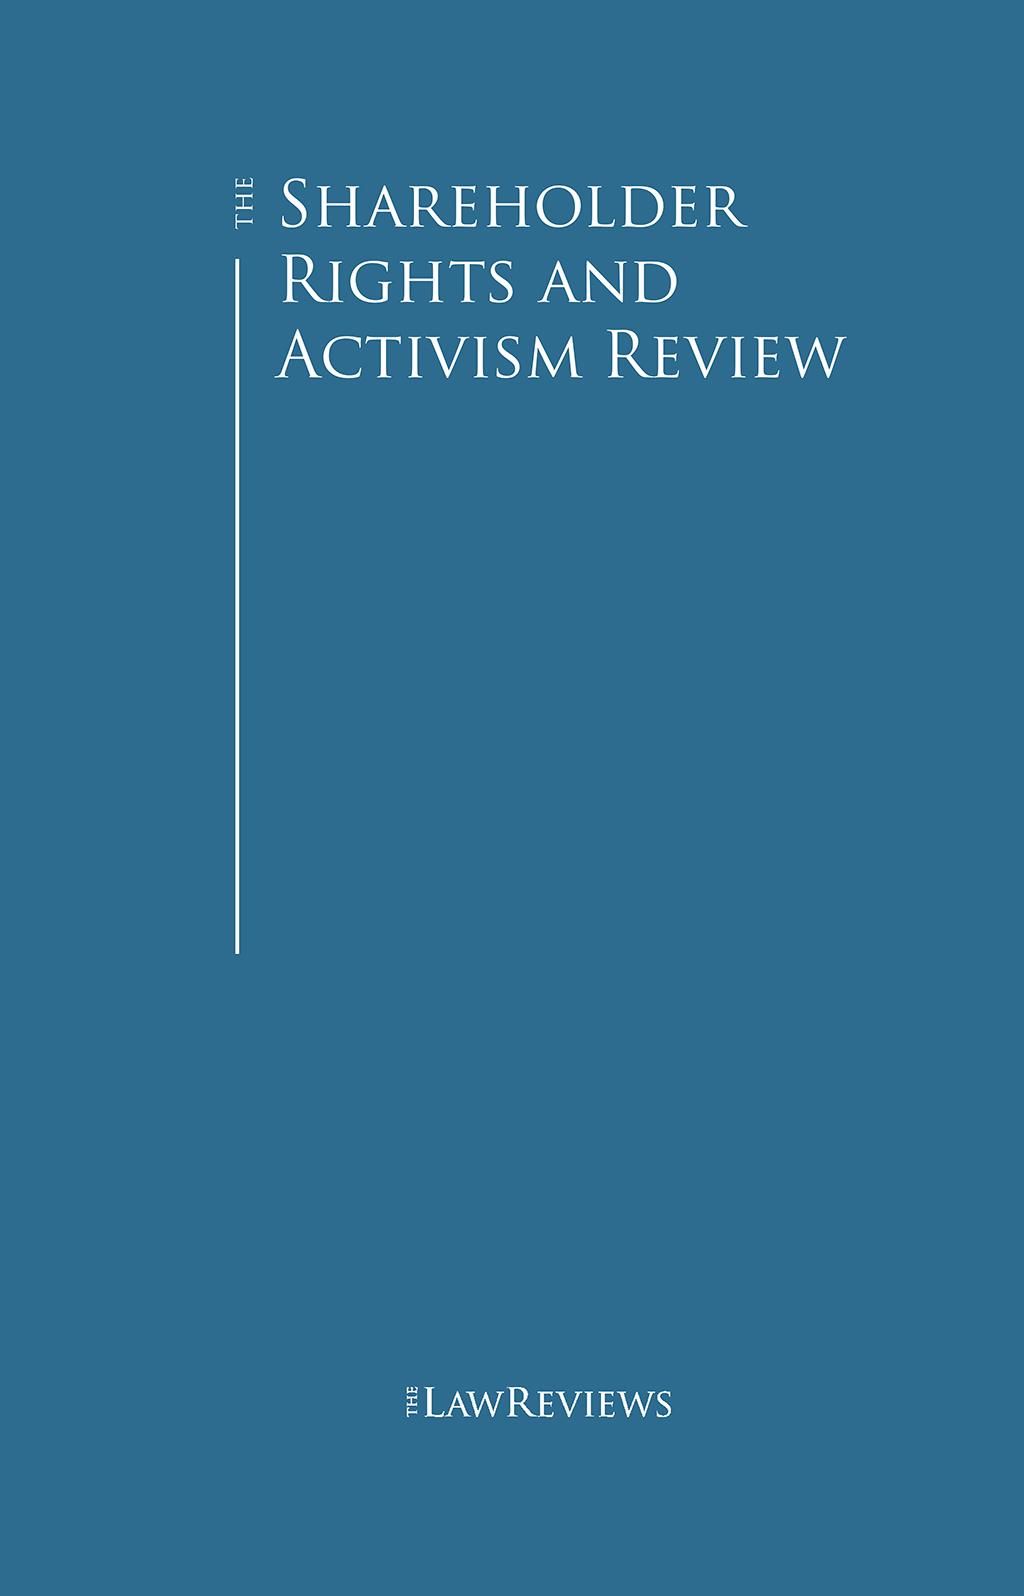 The Shareholder Rights and Activism Review